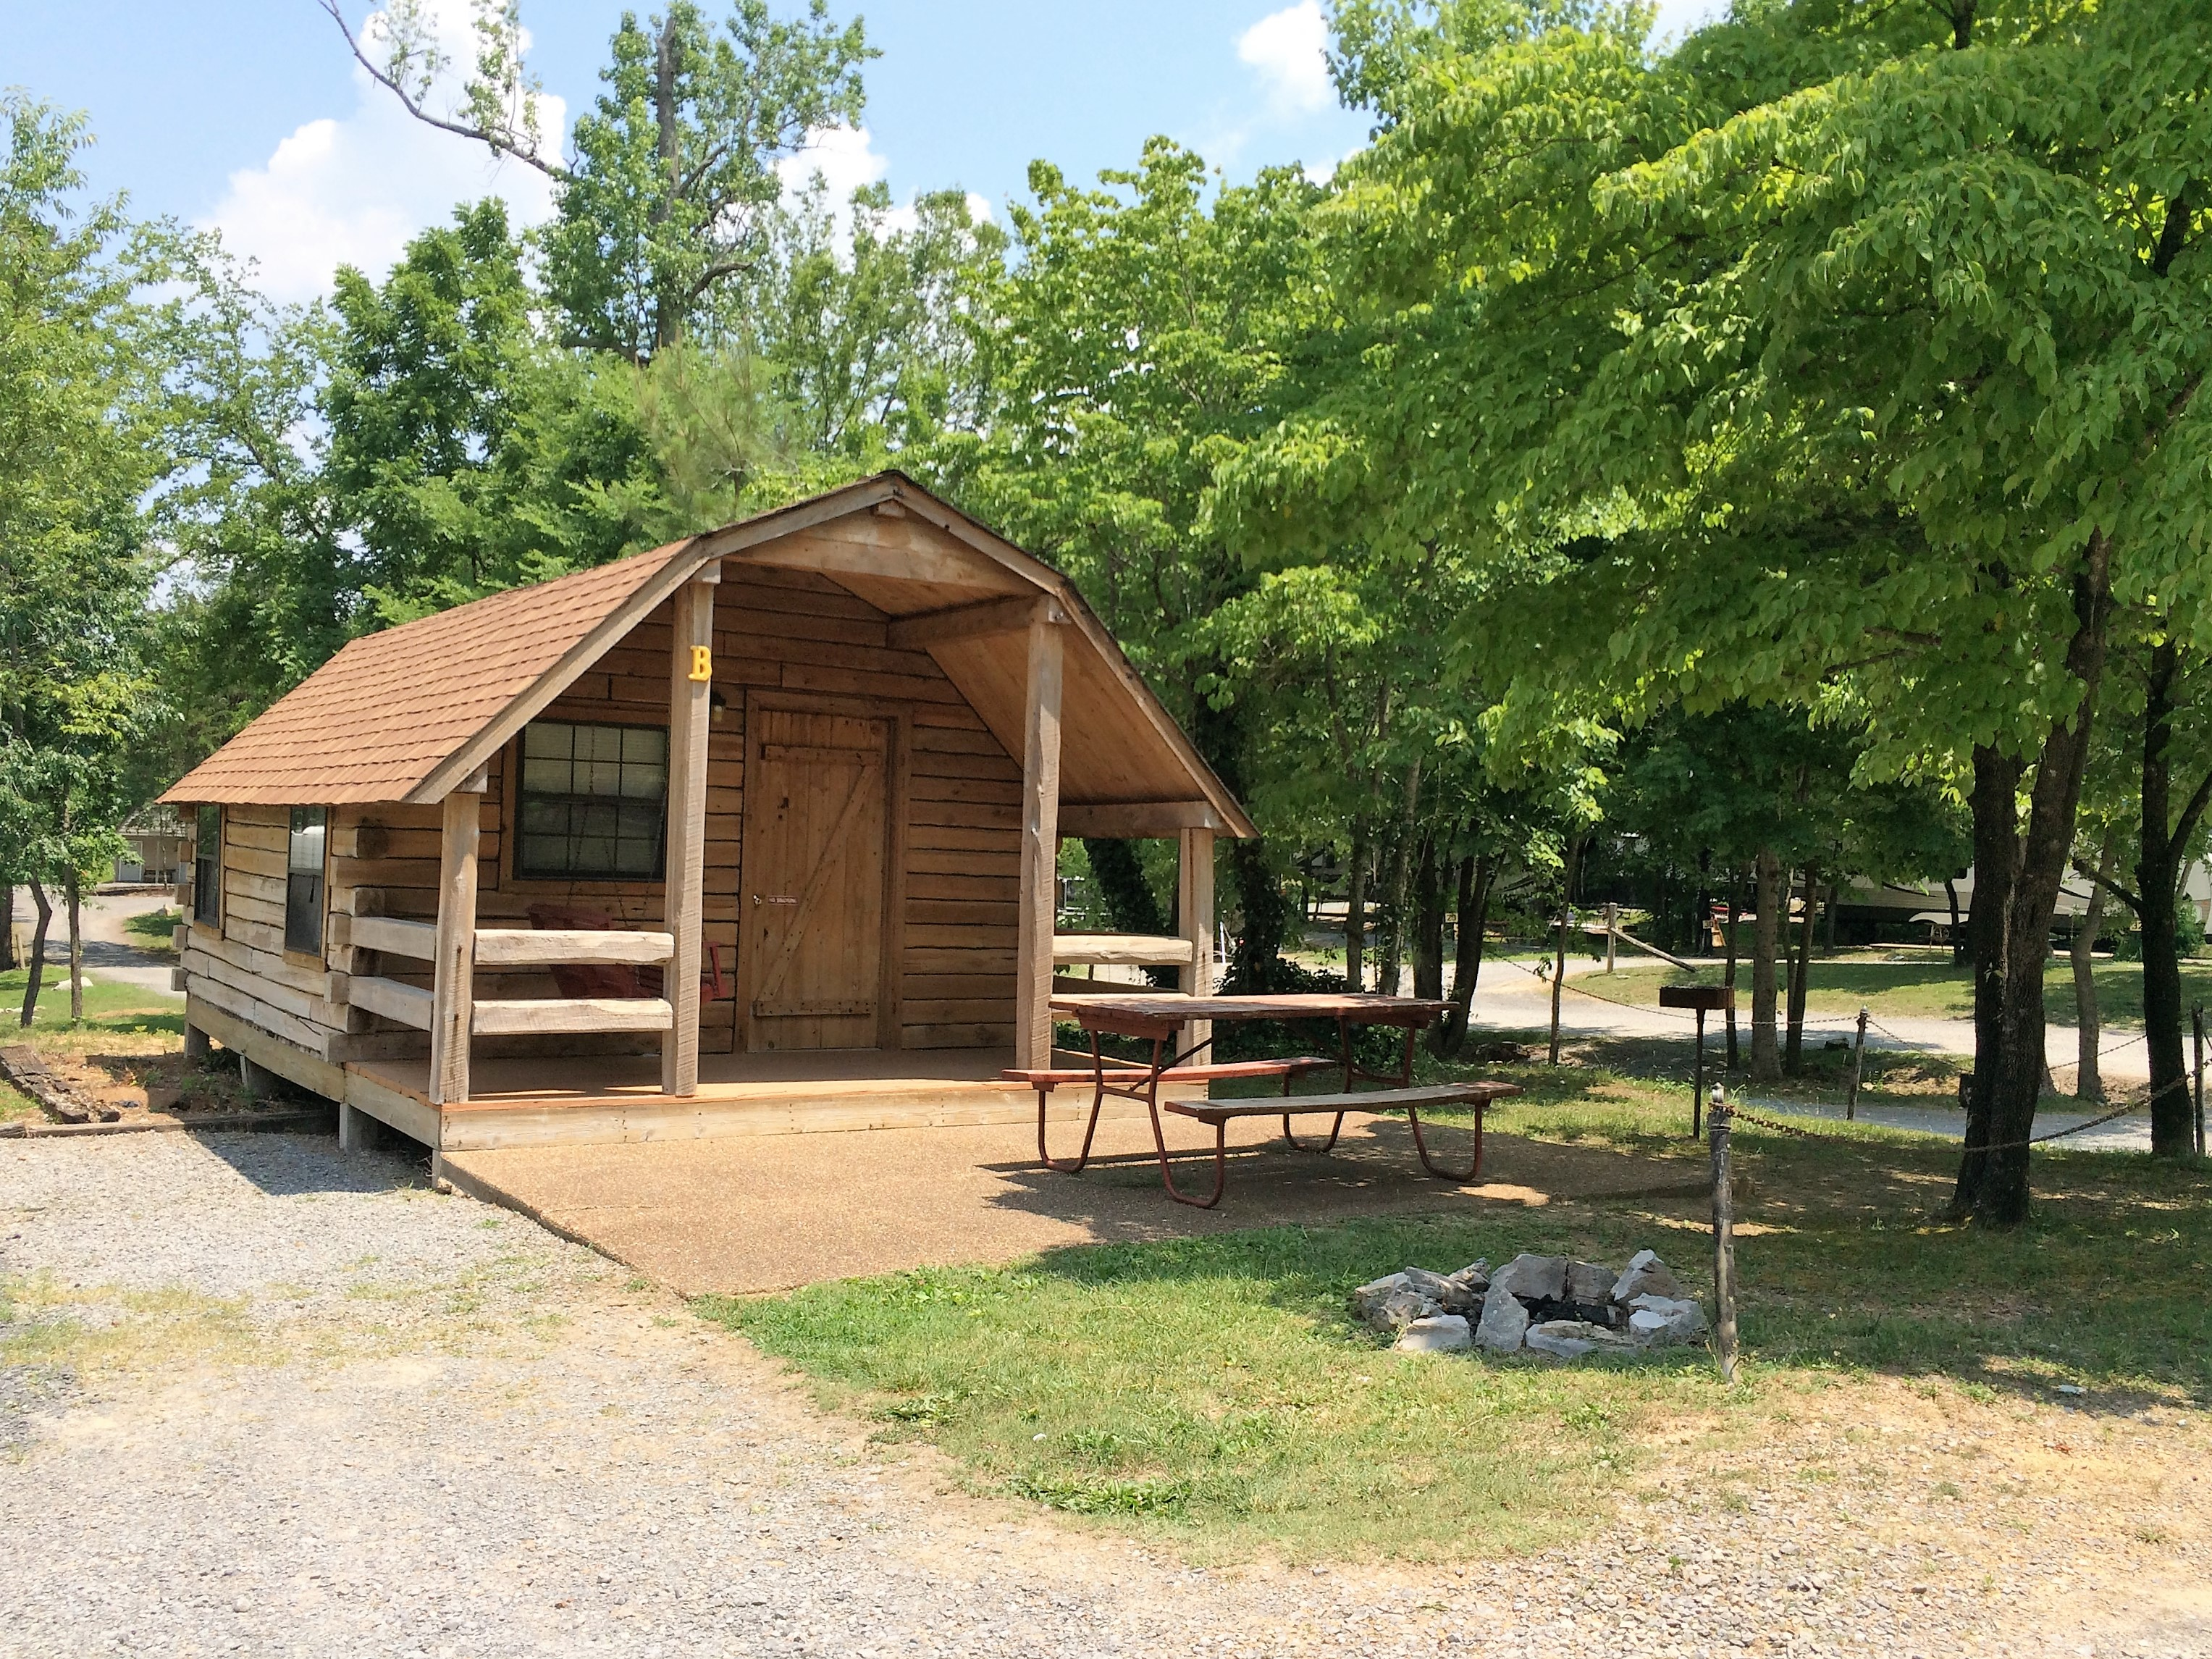 discounts free eagles cabin get special chattanooga resort and nights round buy ridge specials year forge pigeon cabins the